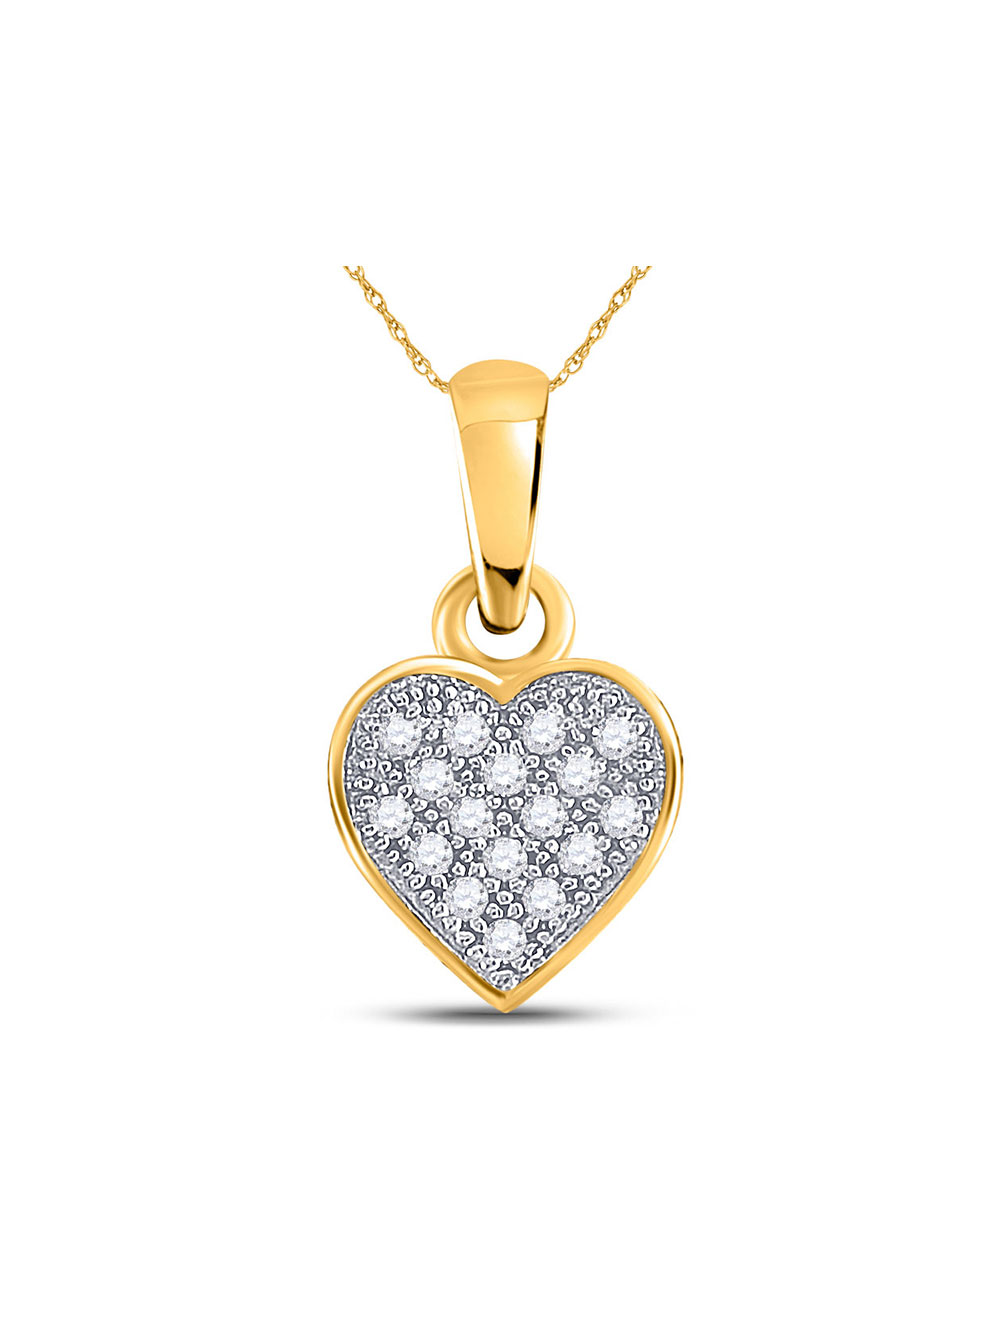 FB Jewels 14K White and Yellow Two Tone Gold Double Dolphins 2D and High Polish Pendant